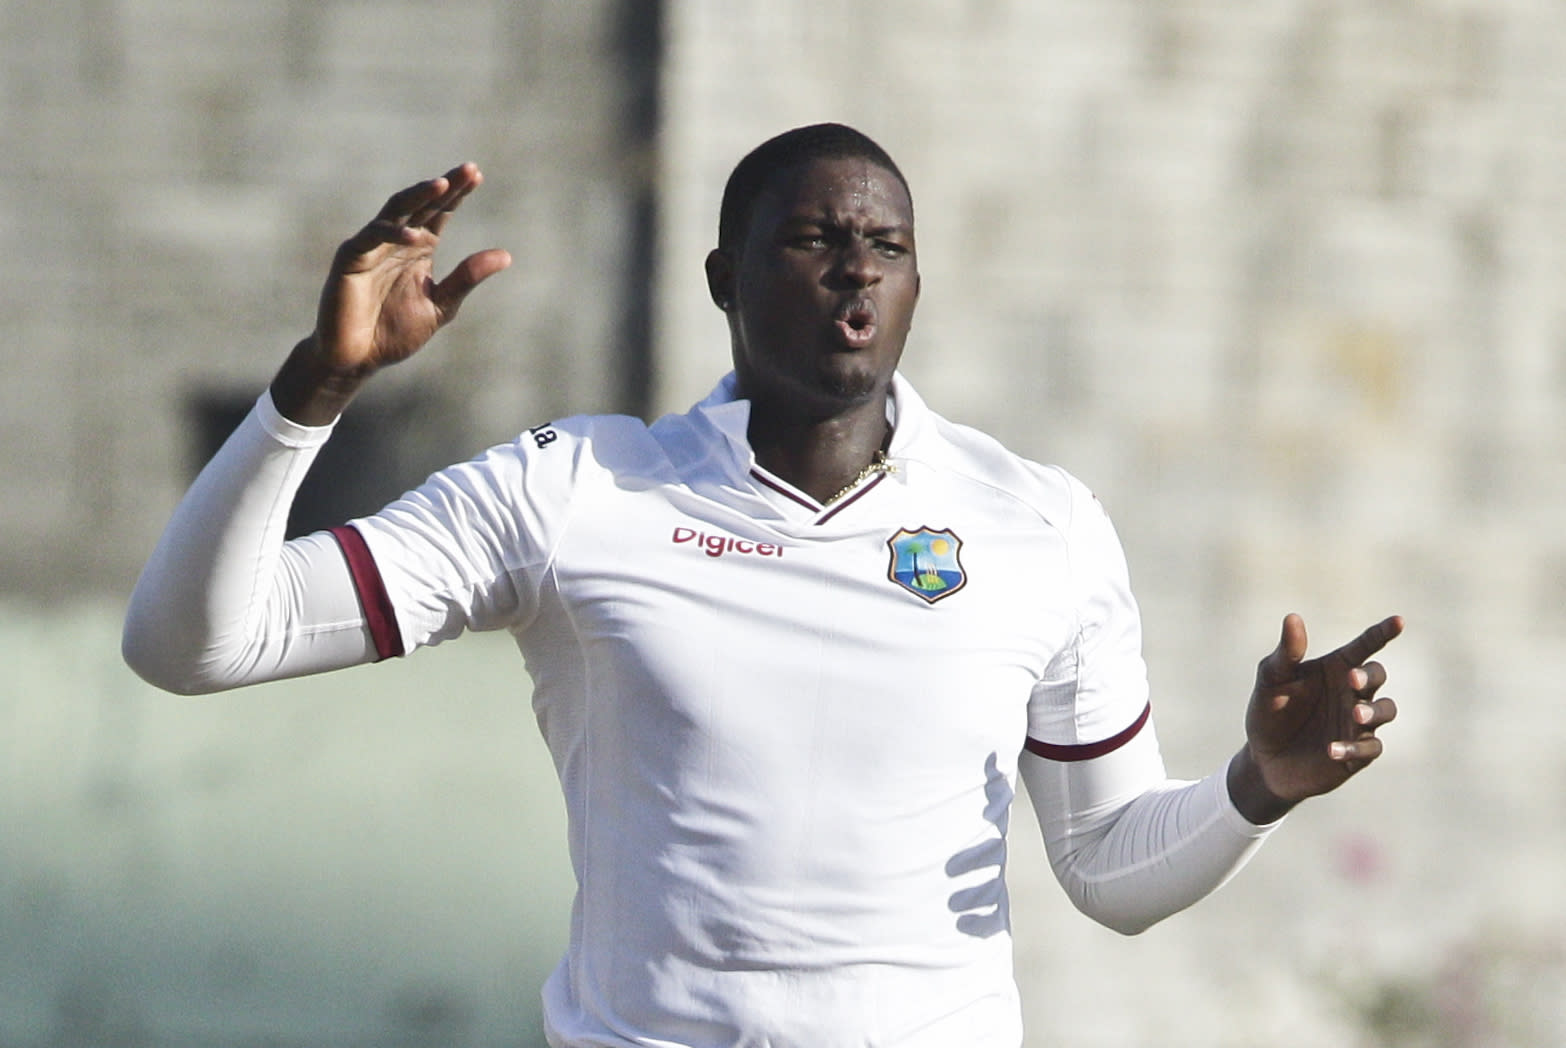 West Indies out for 148, Australia on 85-3 on day 1 of test